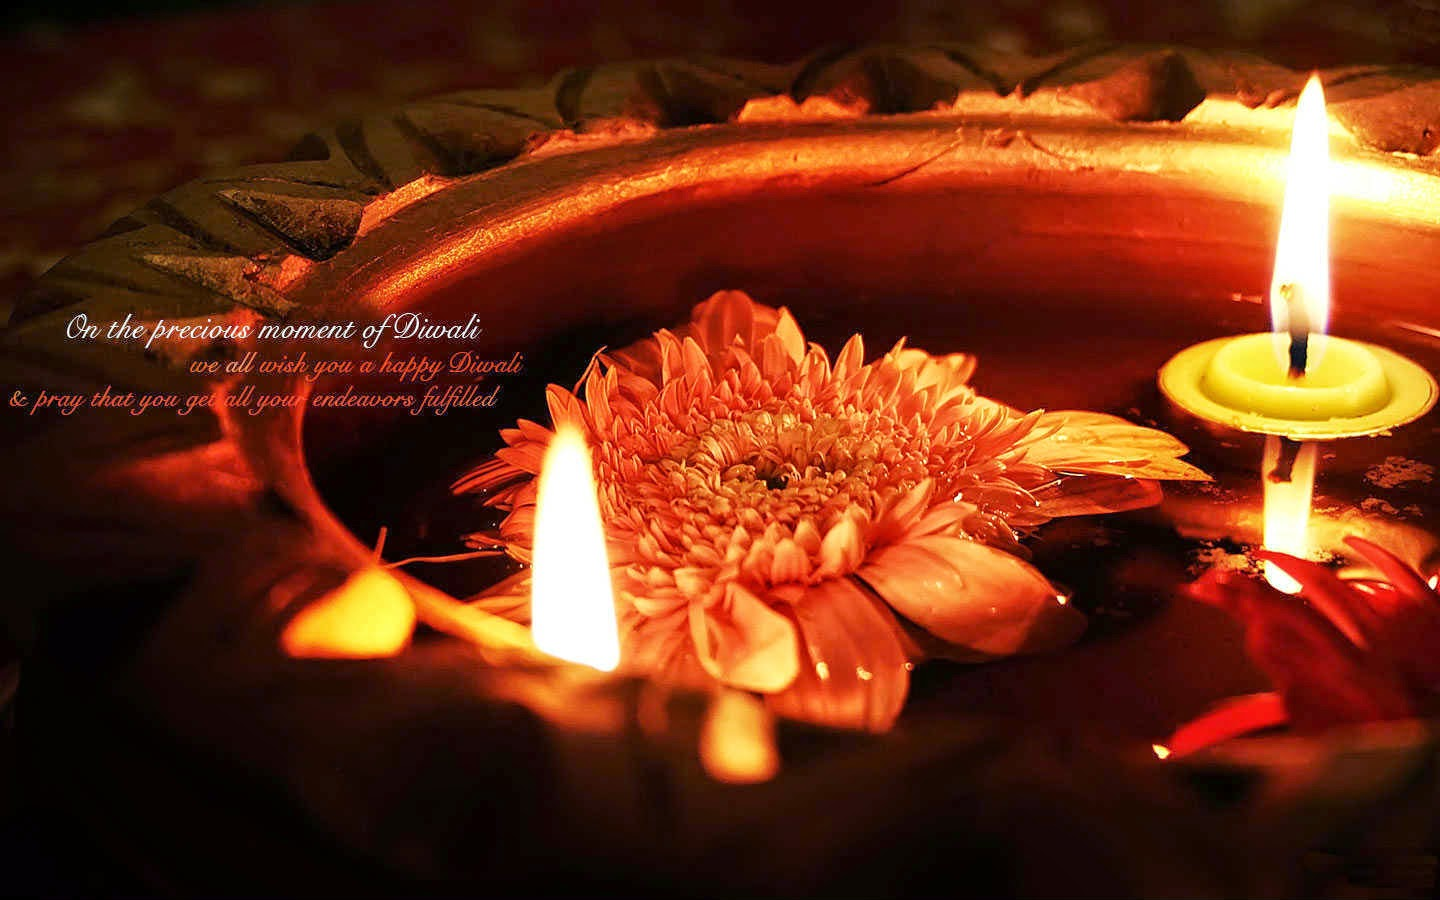 Happy diwali hd wallpapers hd wallpapers download free - Hd wallpaper happy diwali ...